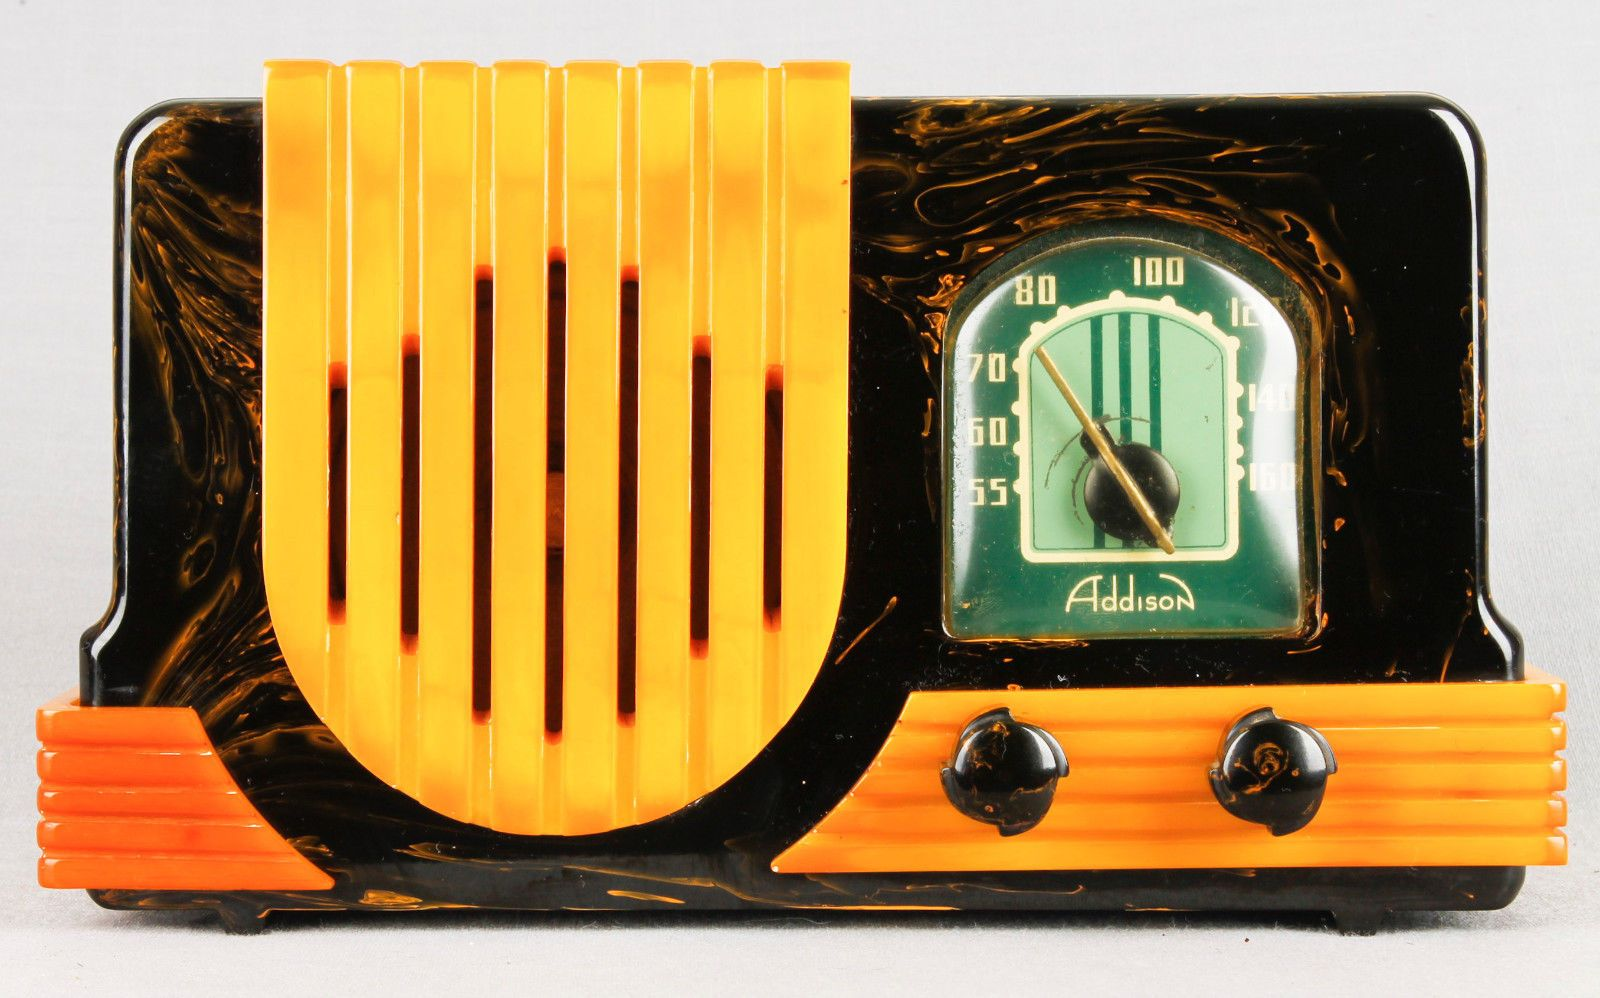 Arte Radio Voix Télé 1940 Deco Addison 2 Marbleized Black Green And Yellow